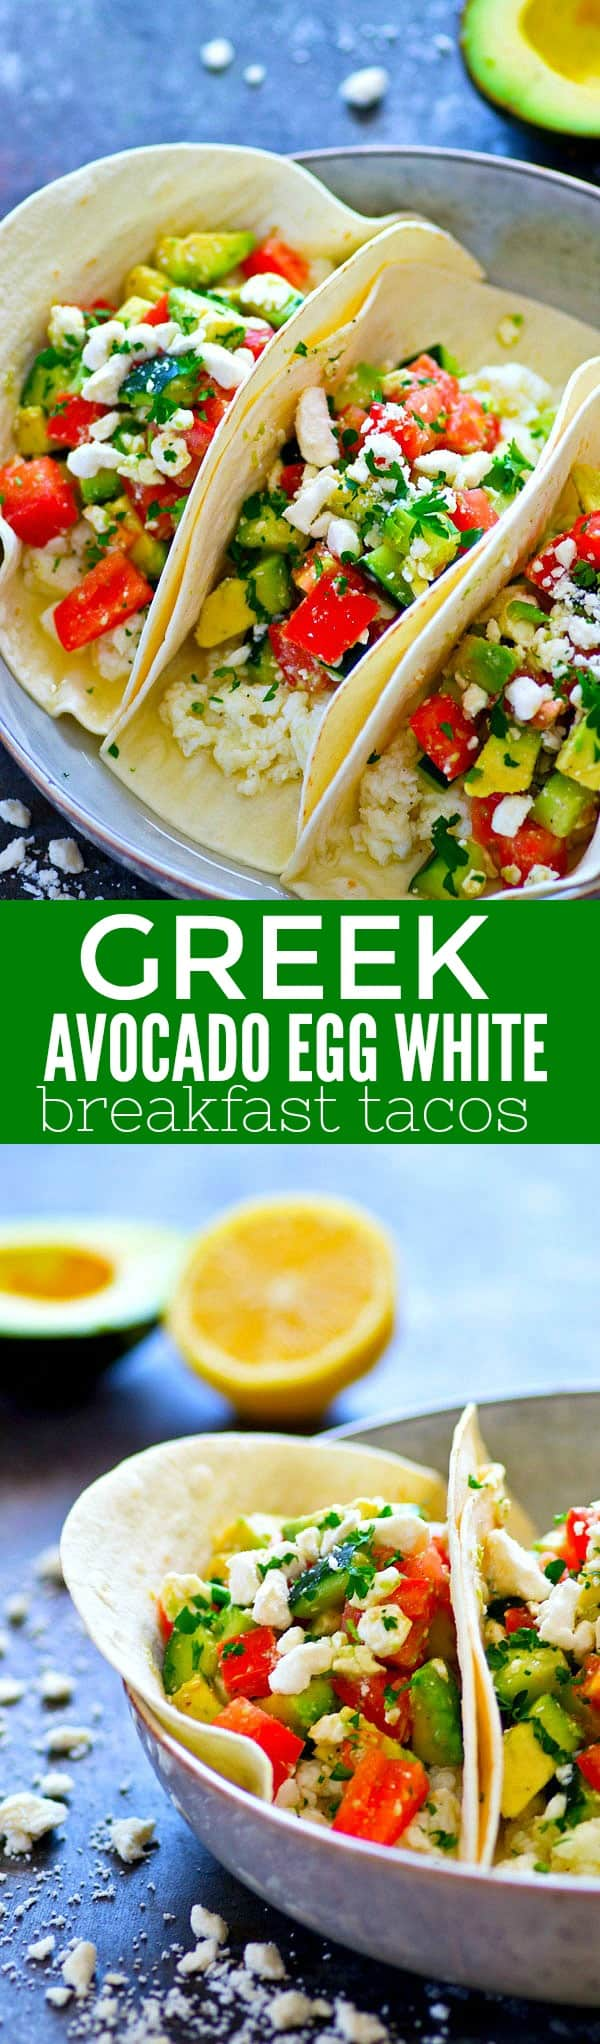 Meet your new favorite low-carb breakfast! These Greek avocado egg white breakfast tacos are LOADED with tons of flavor and light on the calories.